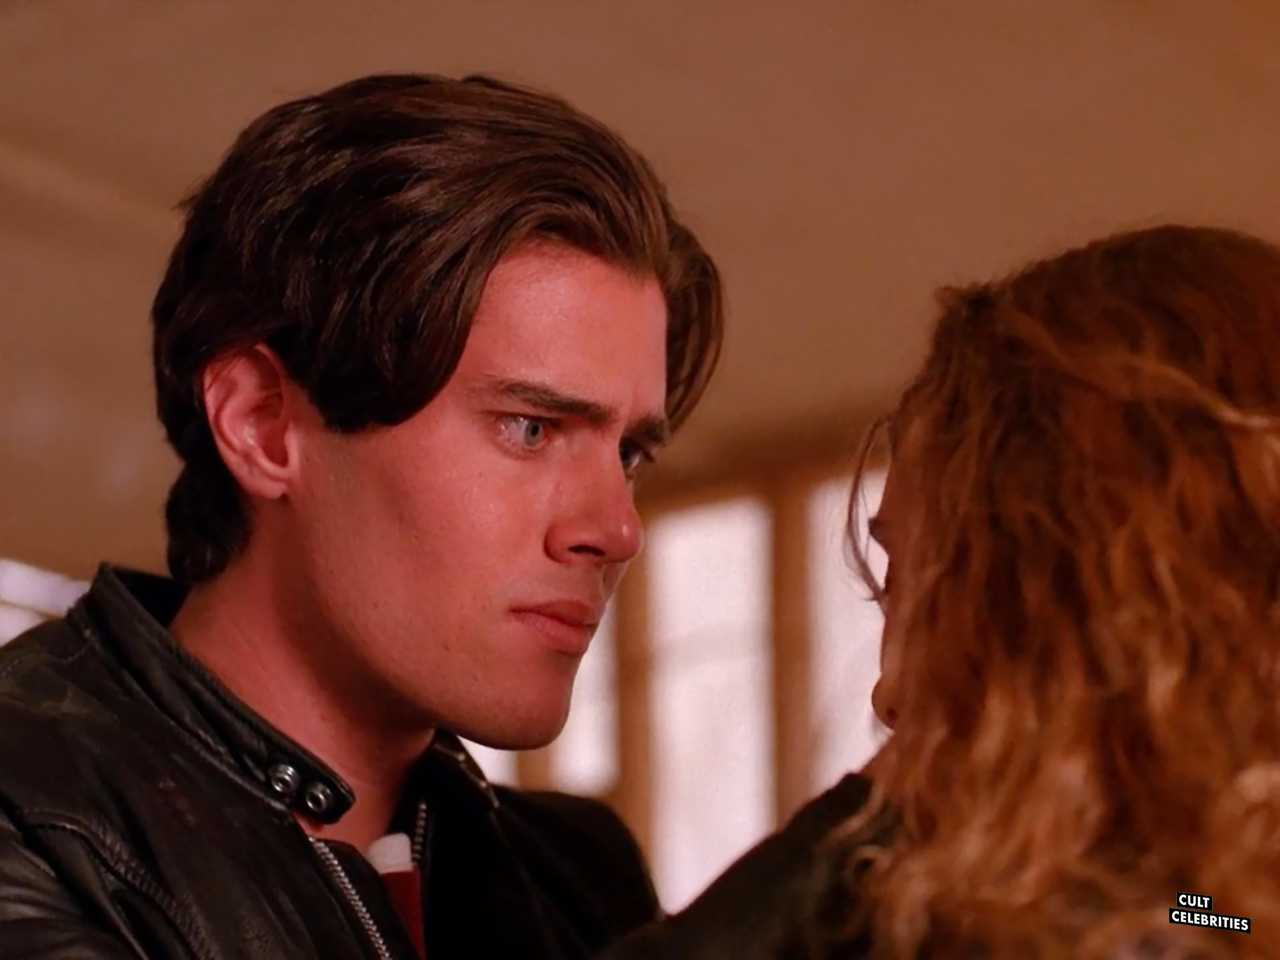 Dana Ashbrook and Mädchen Amick in Twin Peaks (1990)